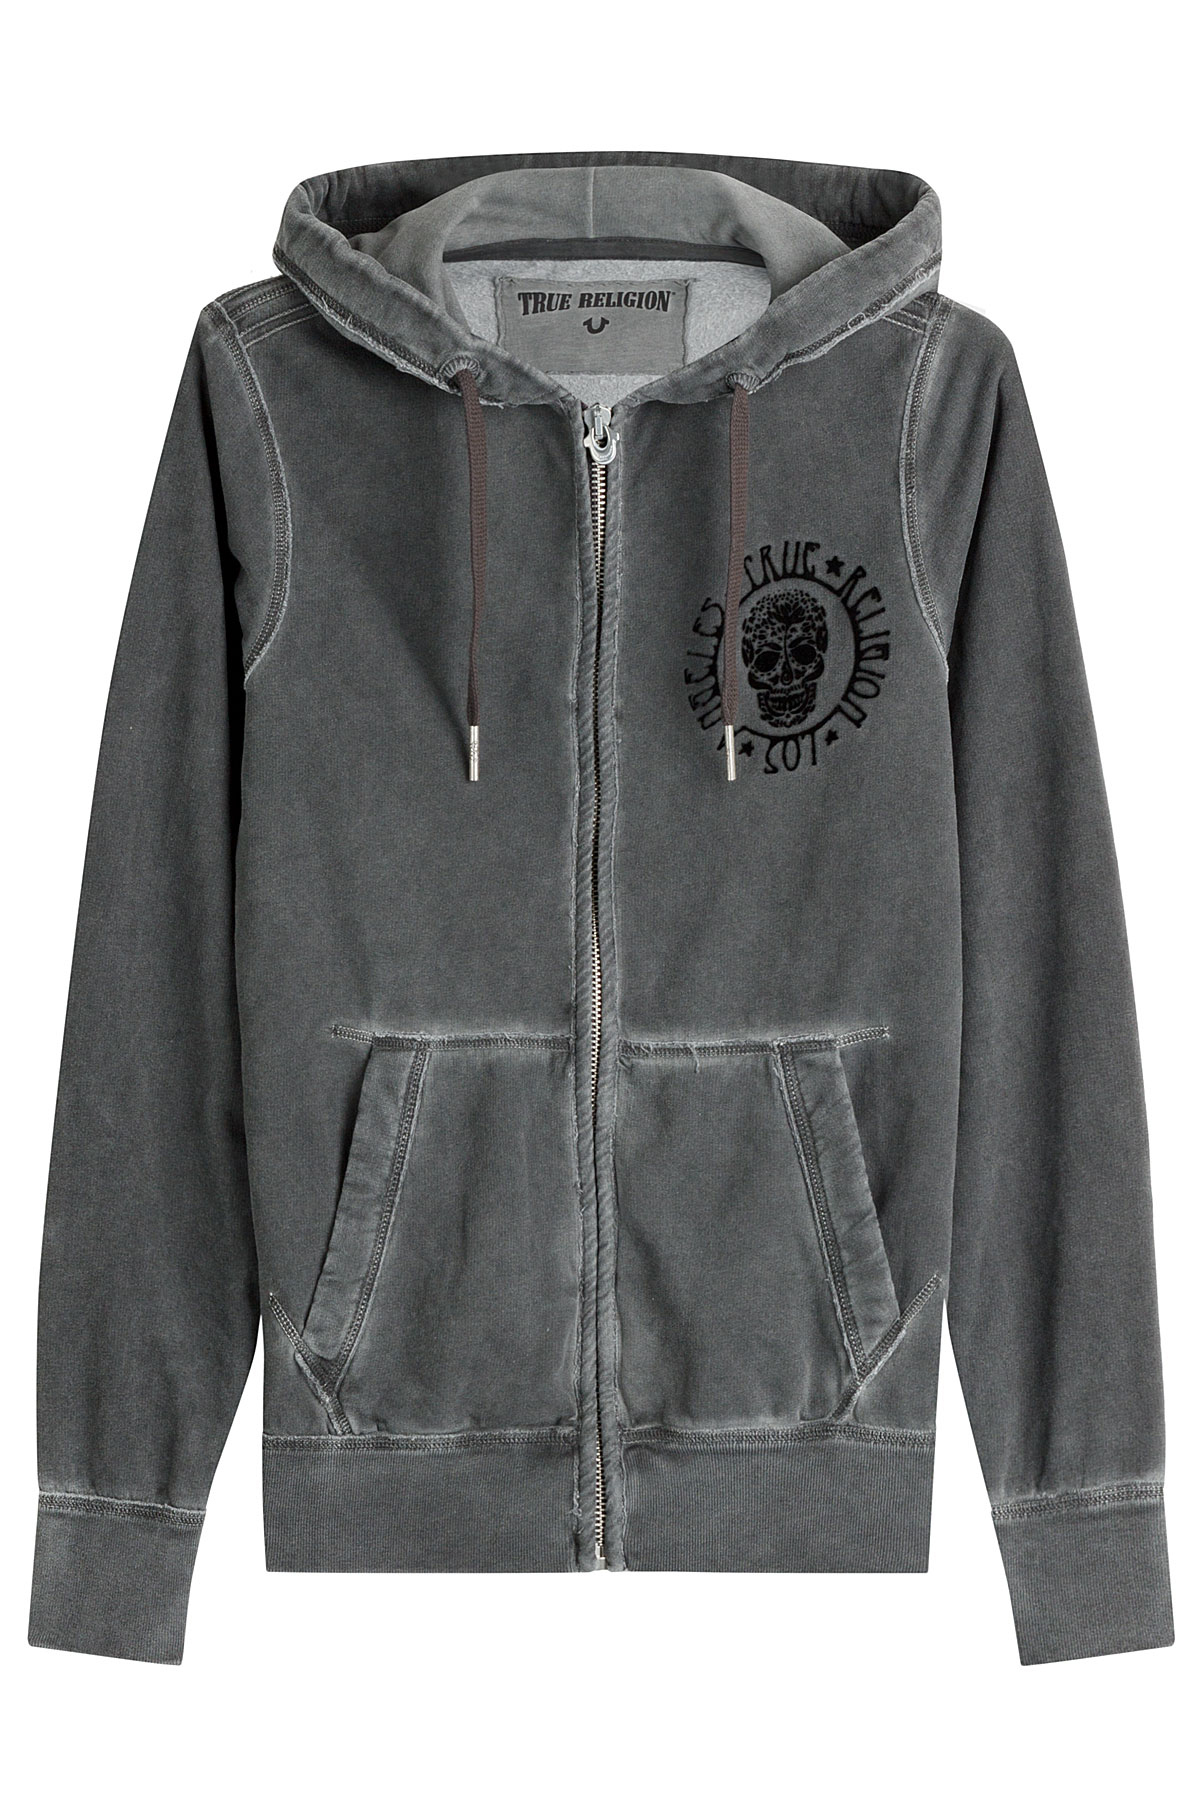 true religion zipped cotton hoodie grey in gray for men lyst. Black Bedroom Furniture Sets. Home Design Ideas